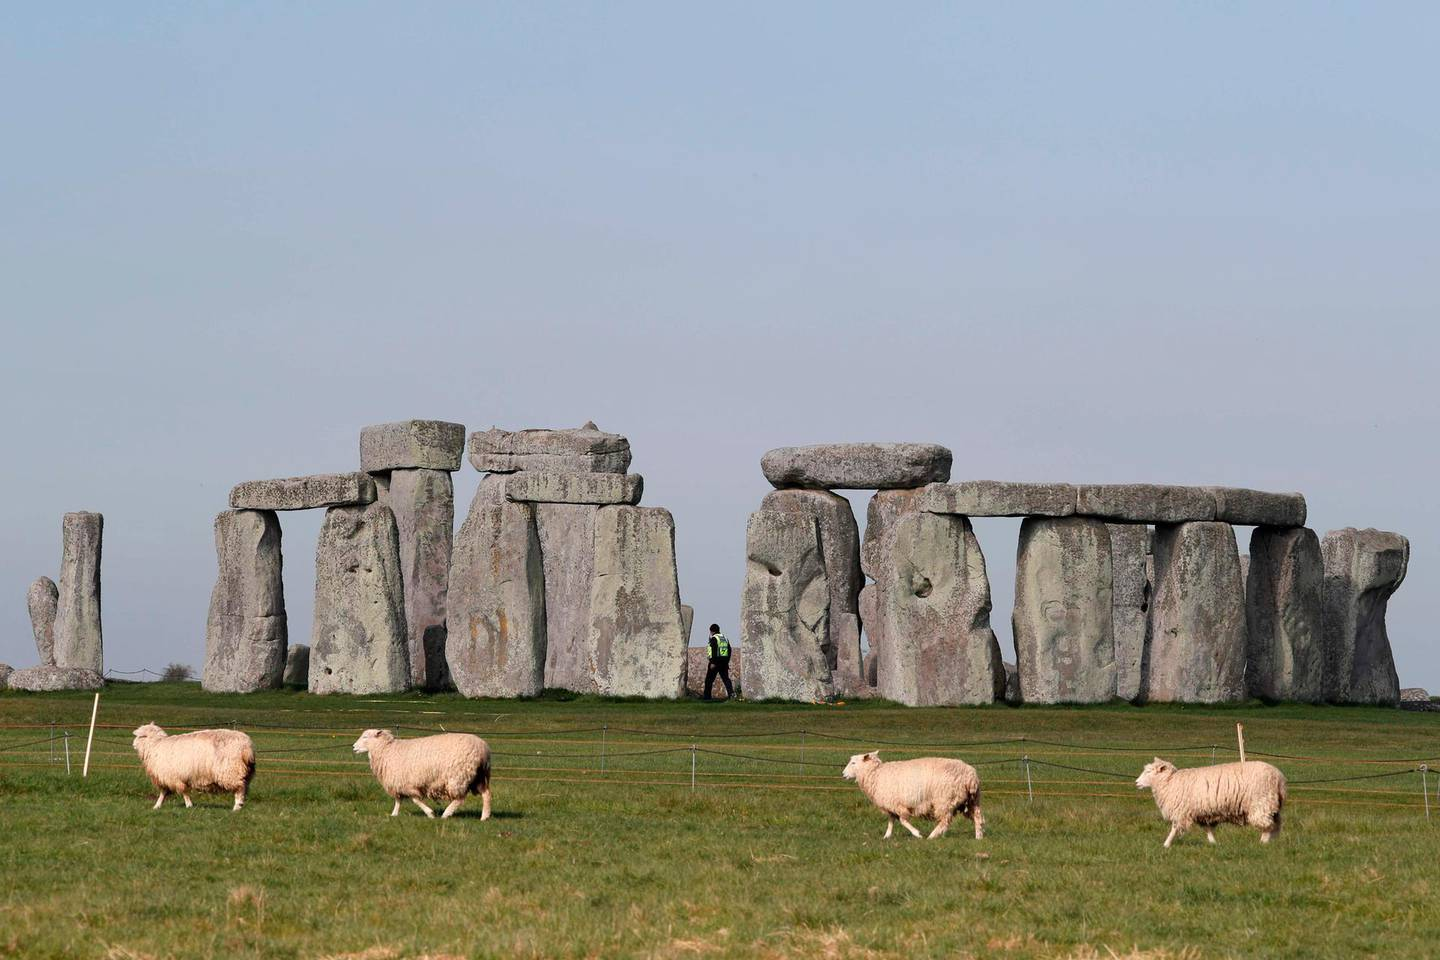 (FILES) In this file photo sheep graze as security guards patrol the prehistoric monument at Stonehenge in southern England, on April 26, 2020, closed during the national lockdown due to the novel coronavirus COVID-19 pandemic.  Stonehenge, a Neolithic wonder in southern England, has vexed historians and archaeologists for centuries with its many mysteries: How was it built? What purpose did it serve? Where did its towering sandstone boulders come from? The answer to the last question may finally have an answer after a study published July 29, 2020 found that most of the giant stones -- known as sarsens -- seem to share a common origin 25 kilometers (16 miles) away in West Woods, an area that teemed with prehistoric activity.   / AFP / Adrian DENNIS